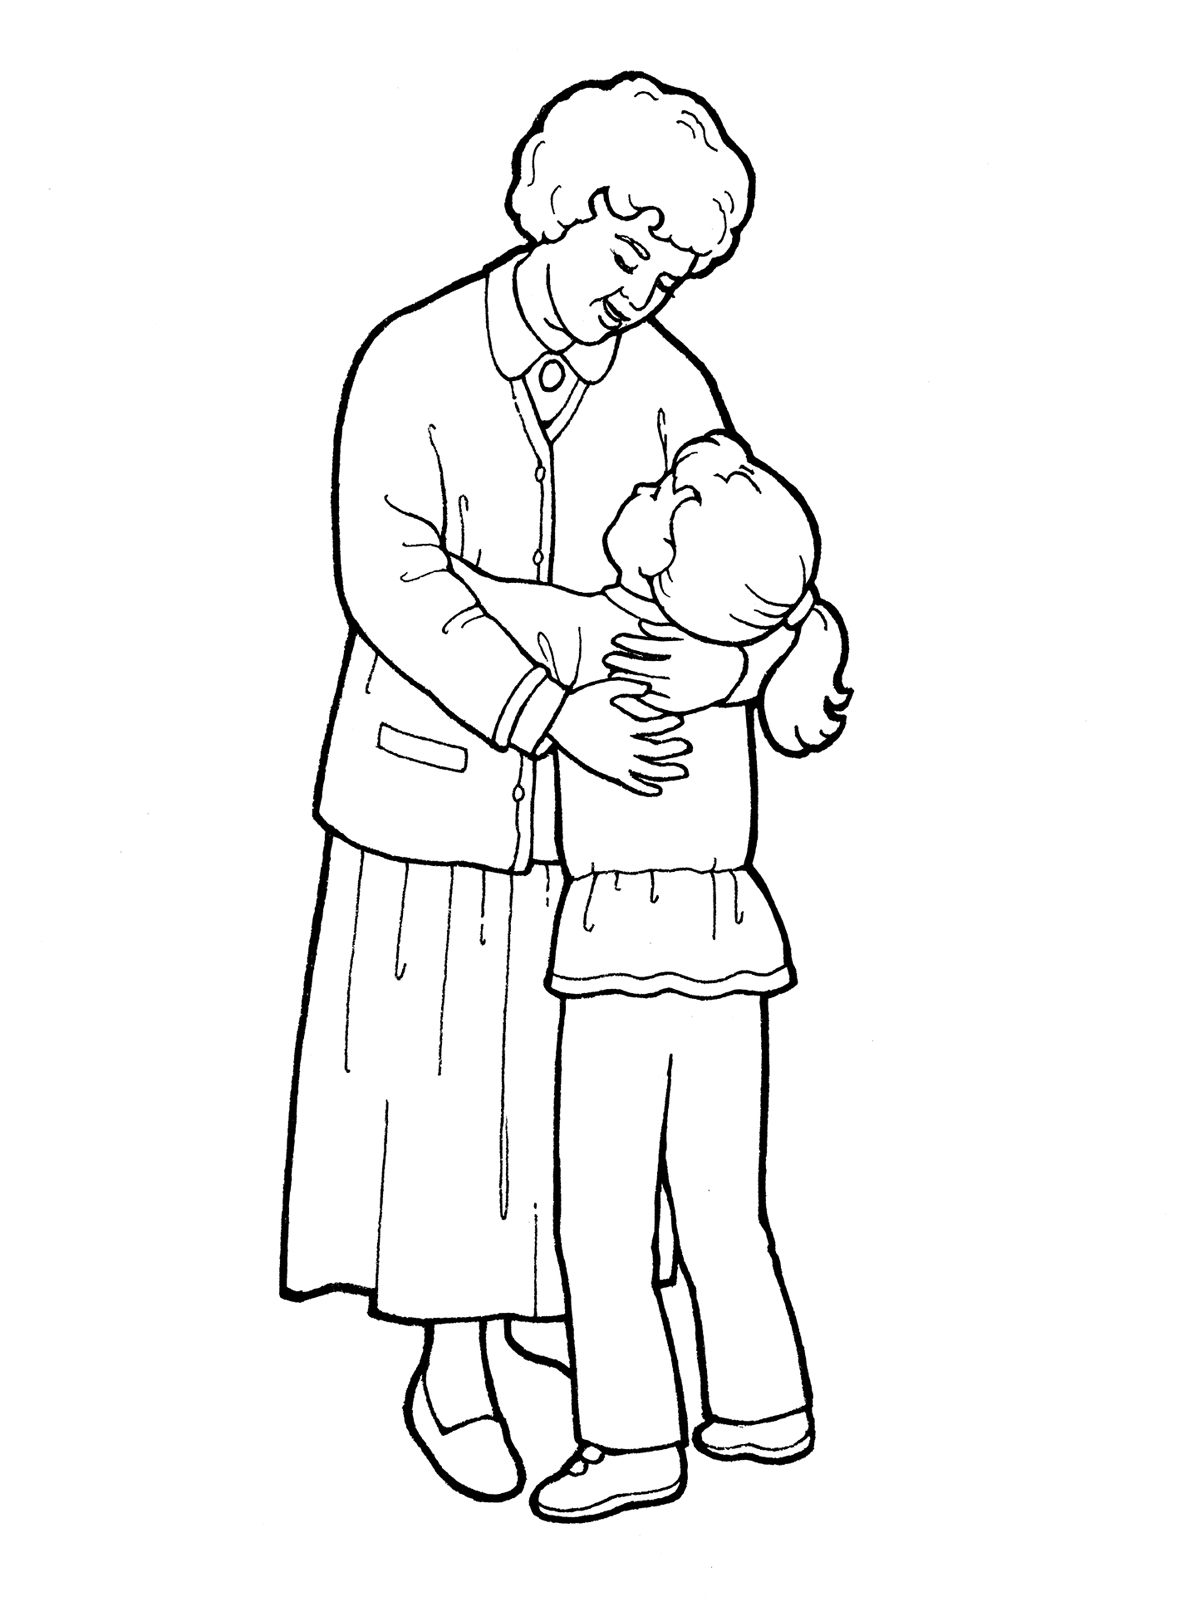 1200x1600 Two Girls Hugging Coloring Pages Inside Hug A Child Page